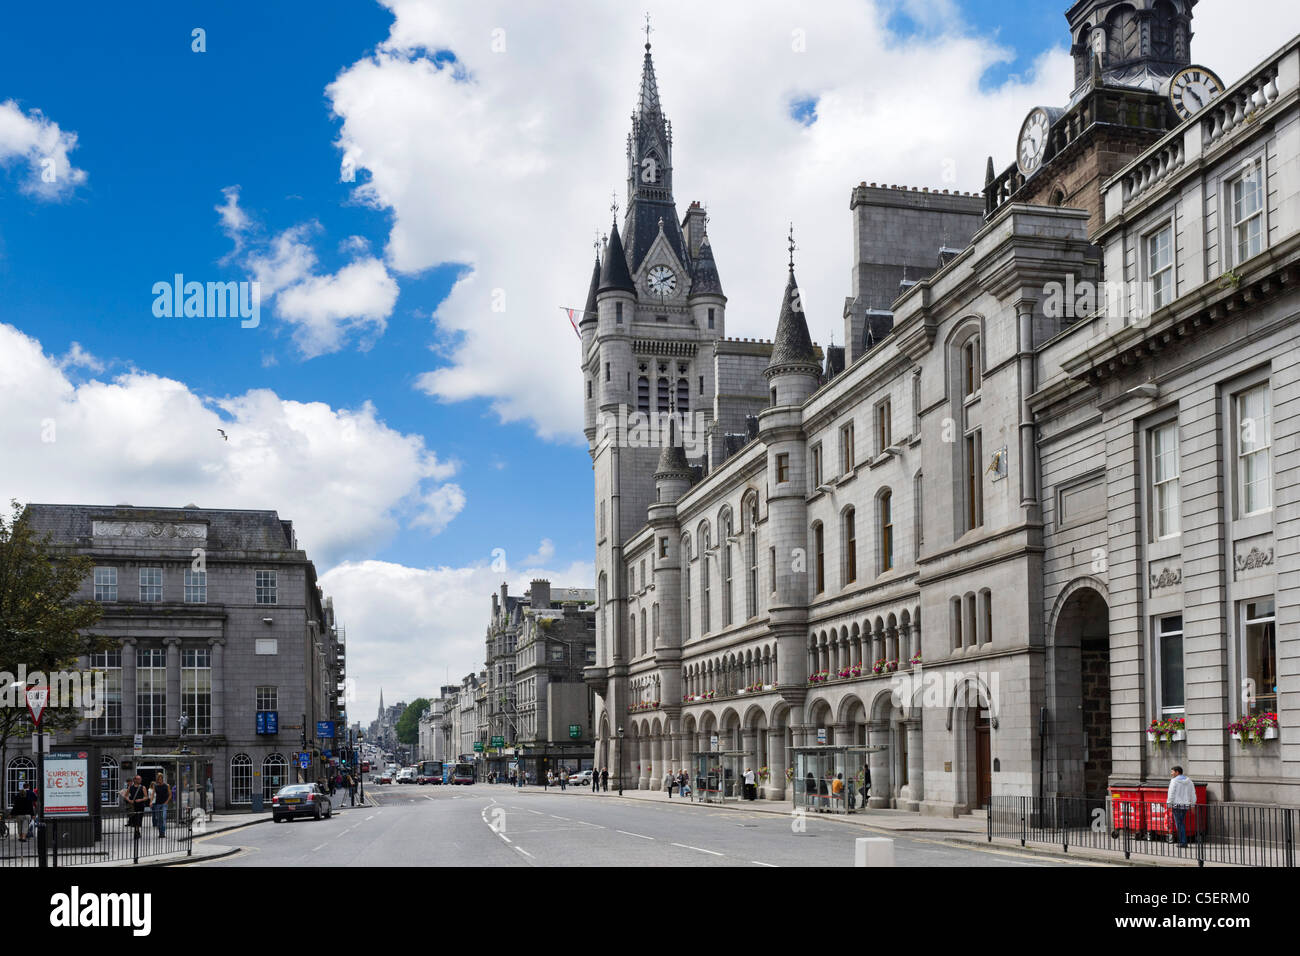 Union Street in the city centre, Aberdeen, Scotland, UK - Stock Image